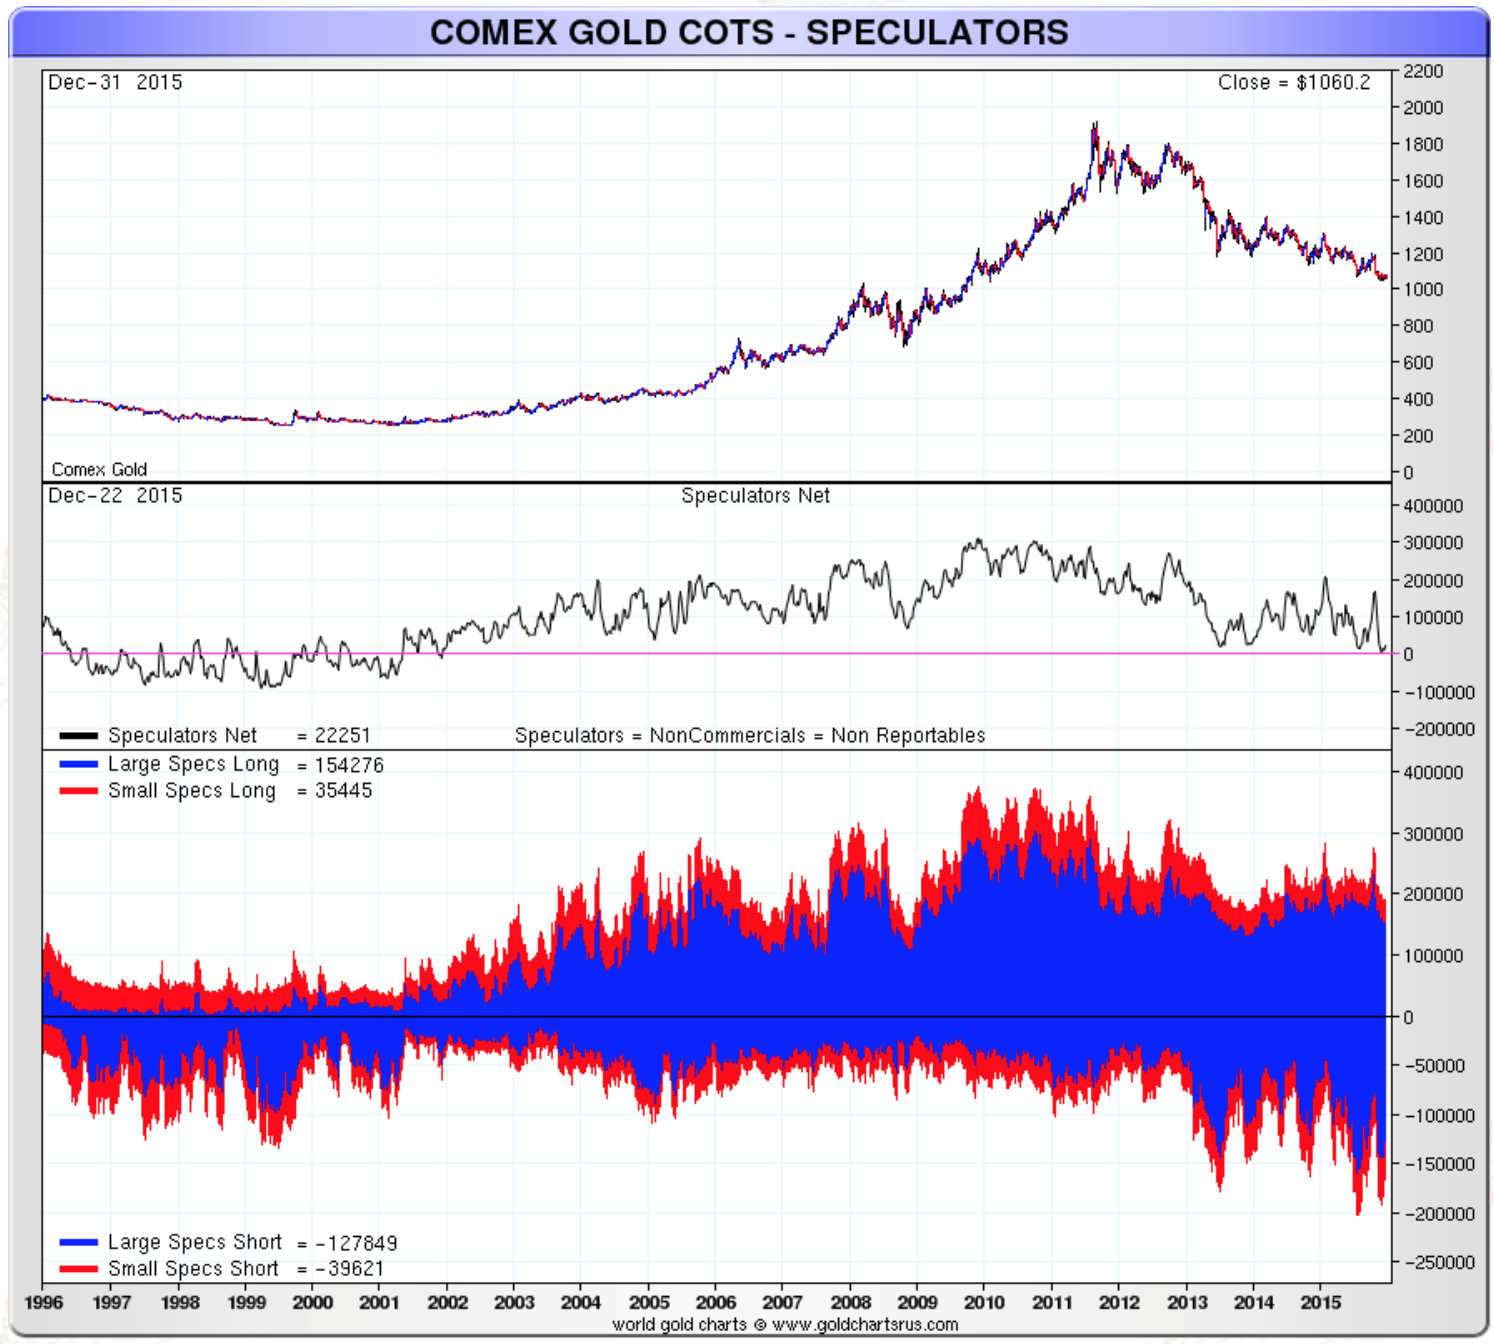 COMEX gold cots - Speculators